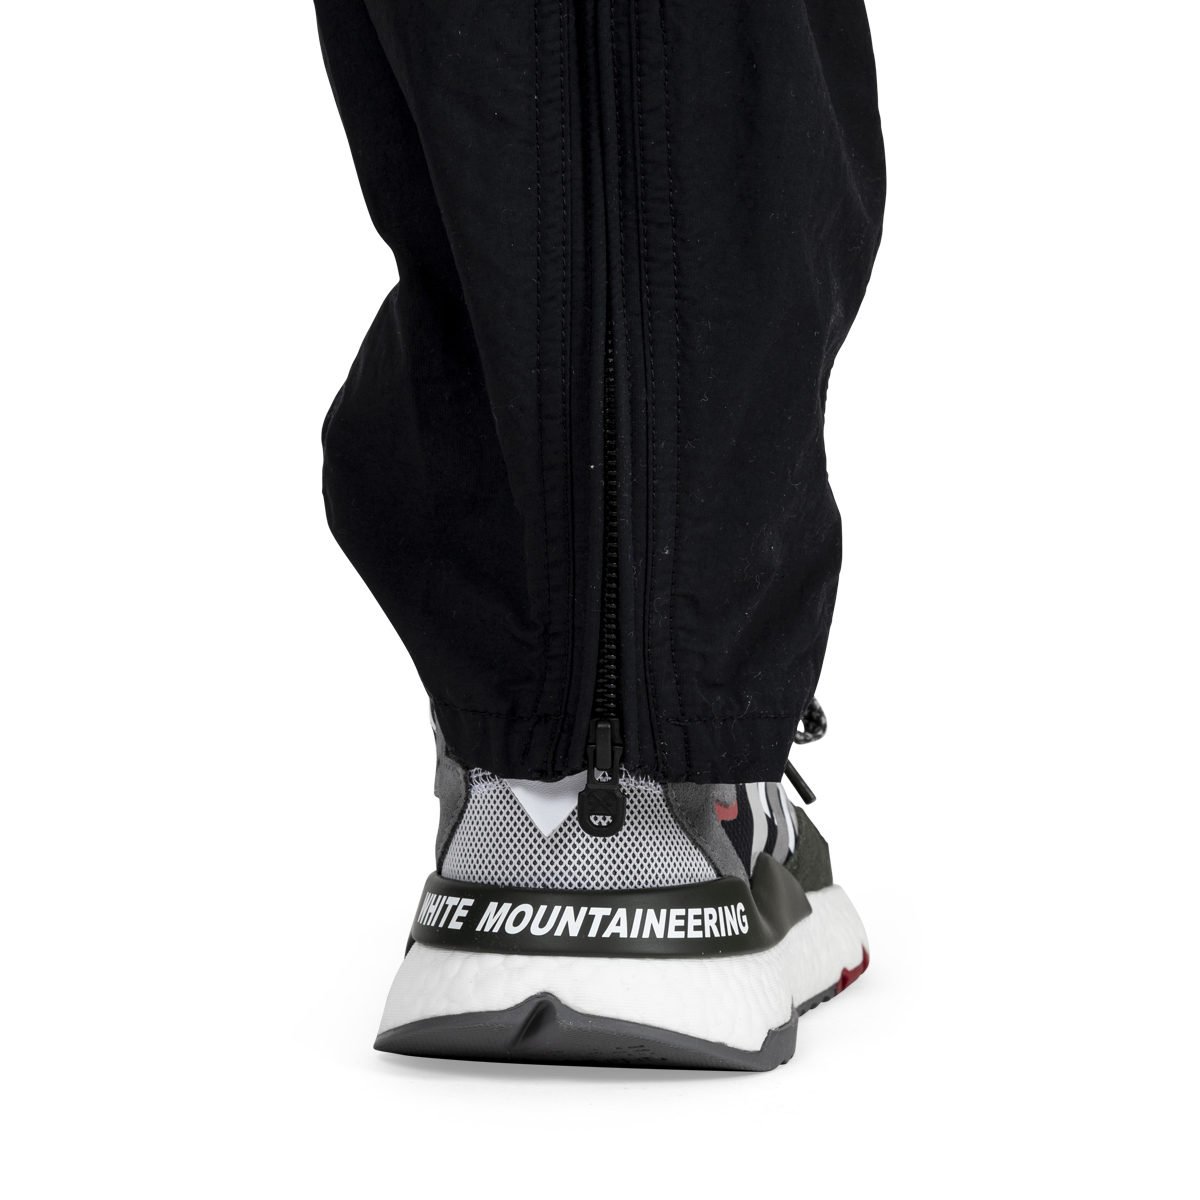 White Mountaineering Multi Pocket Parachute Pant